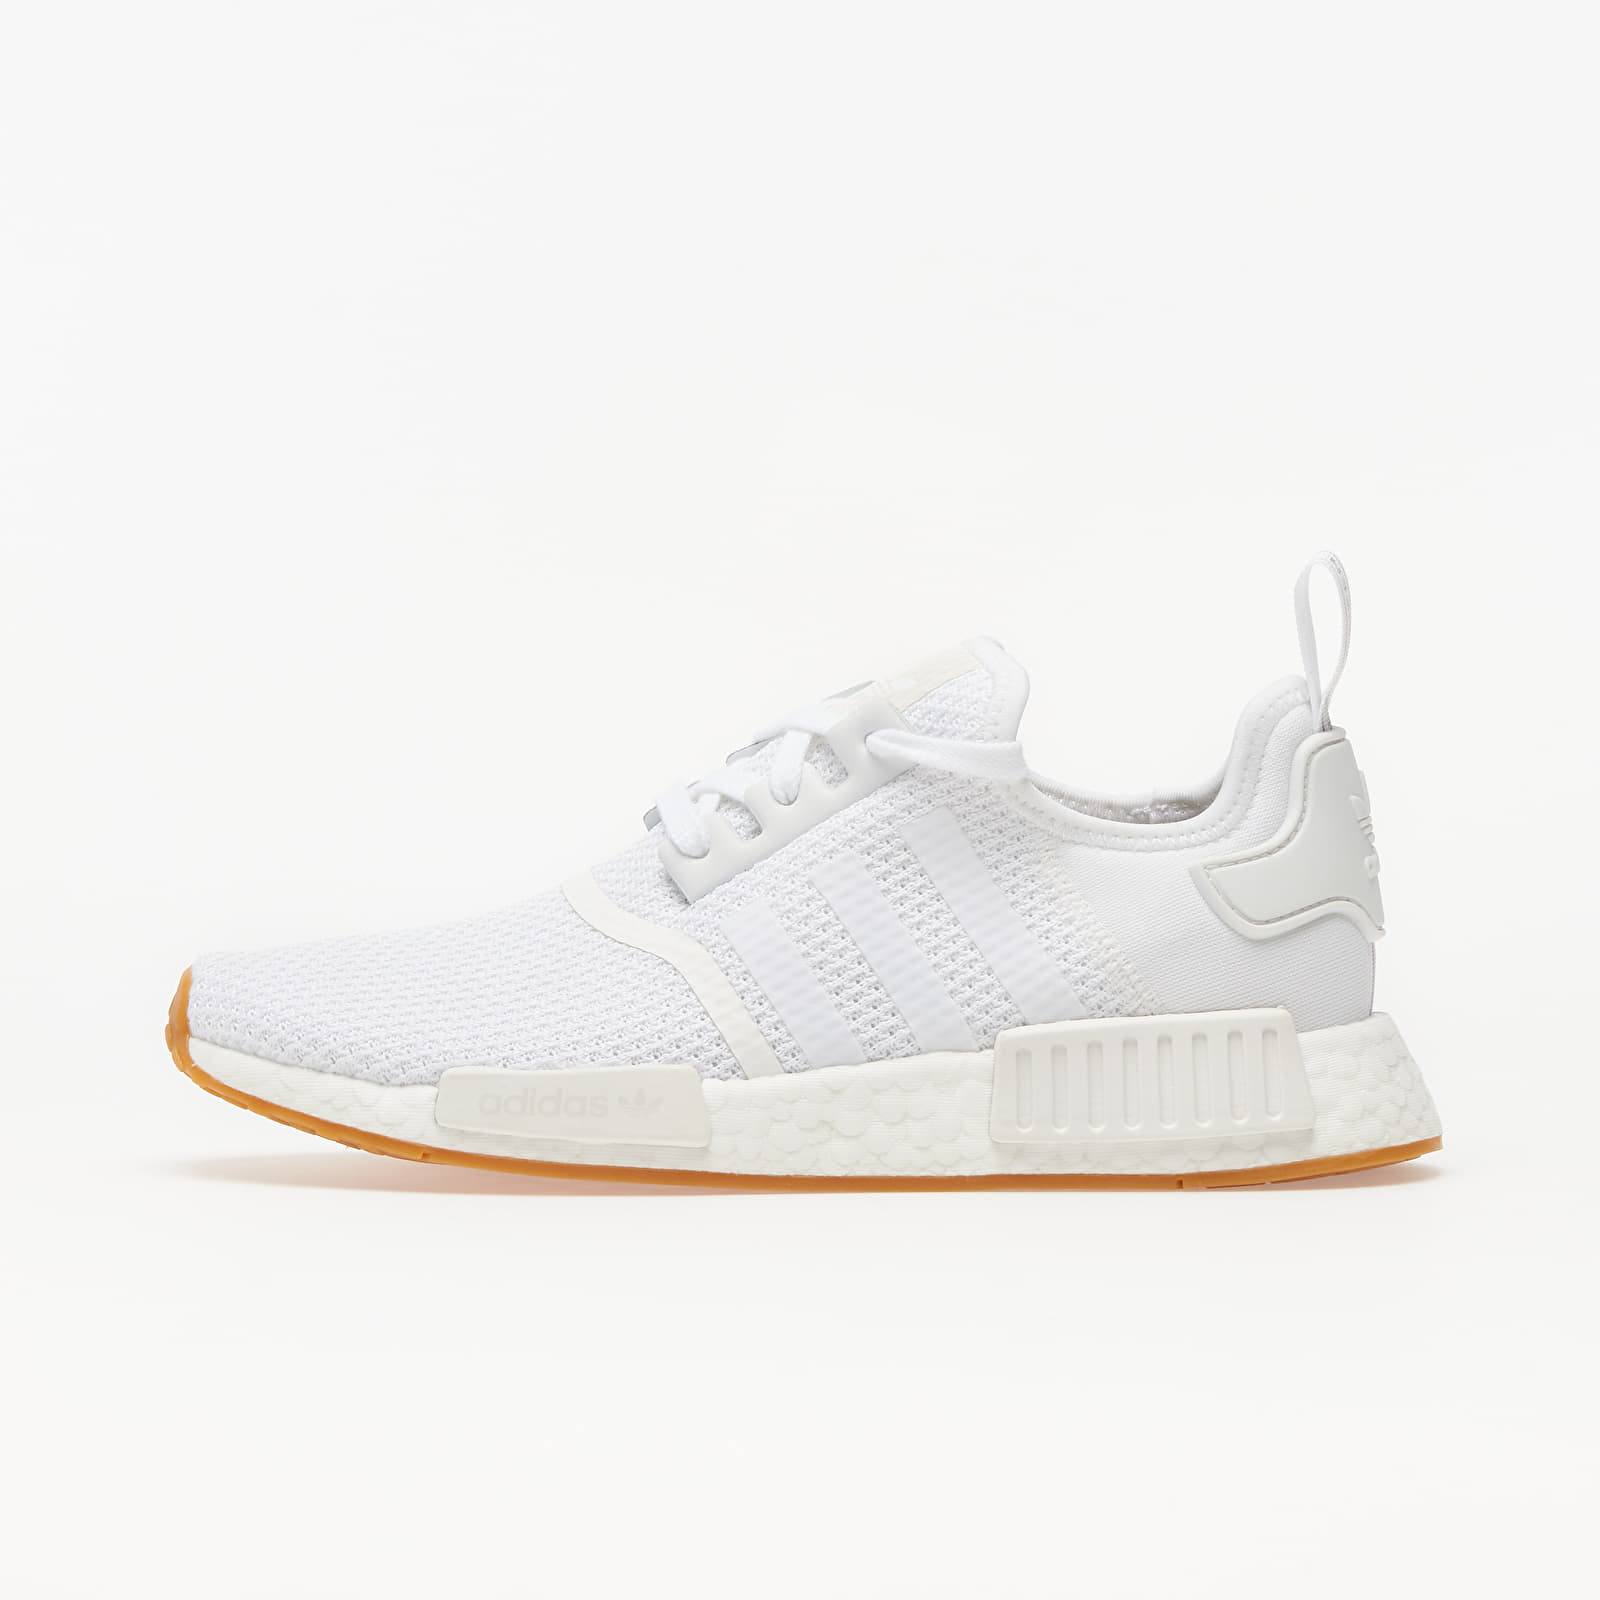 Men's shoes adidas NMD_R1 Ftw White/ Ftw White/ Gum 3